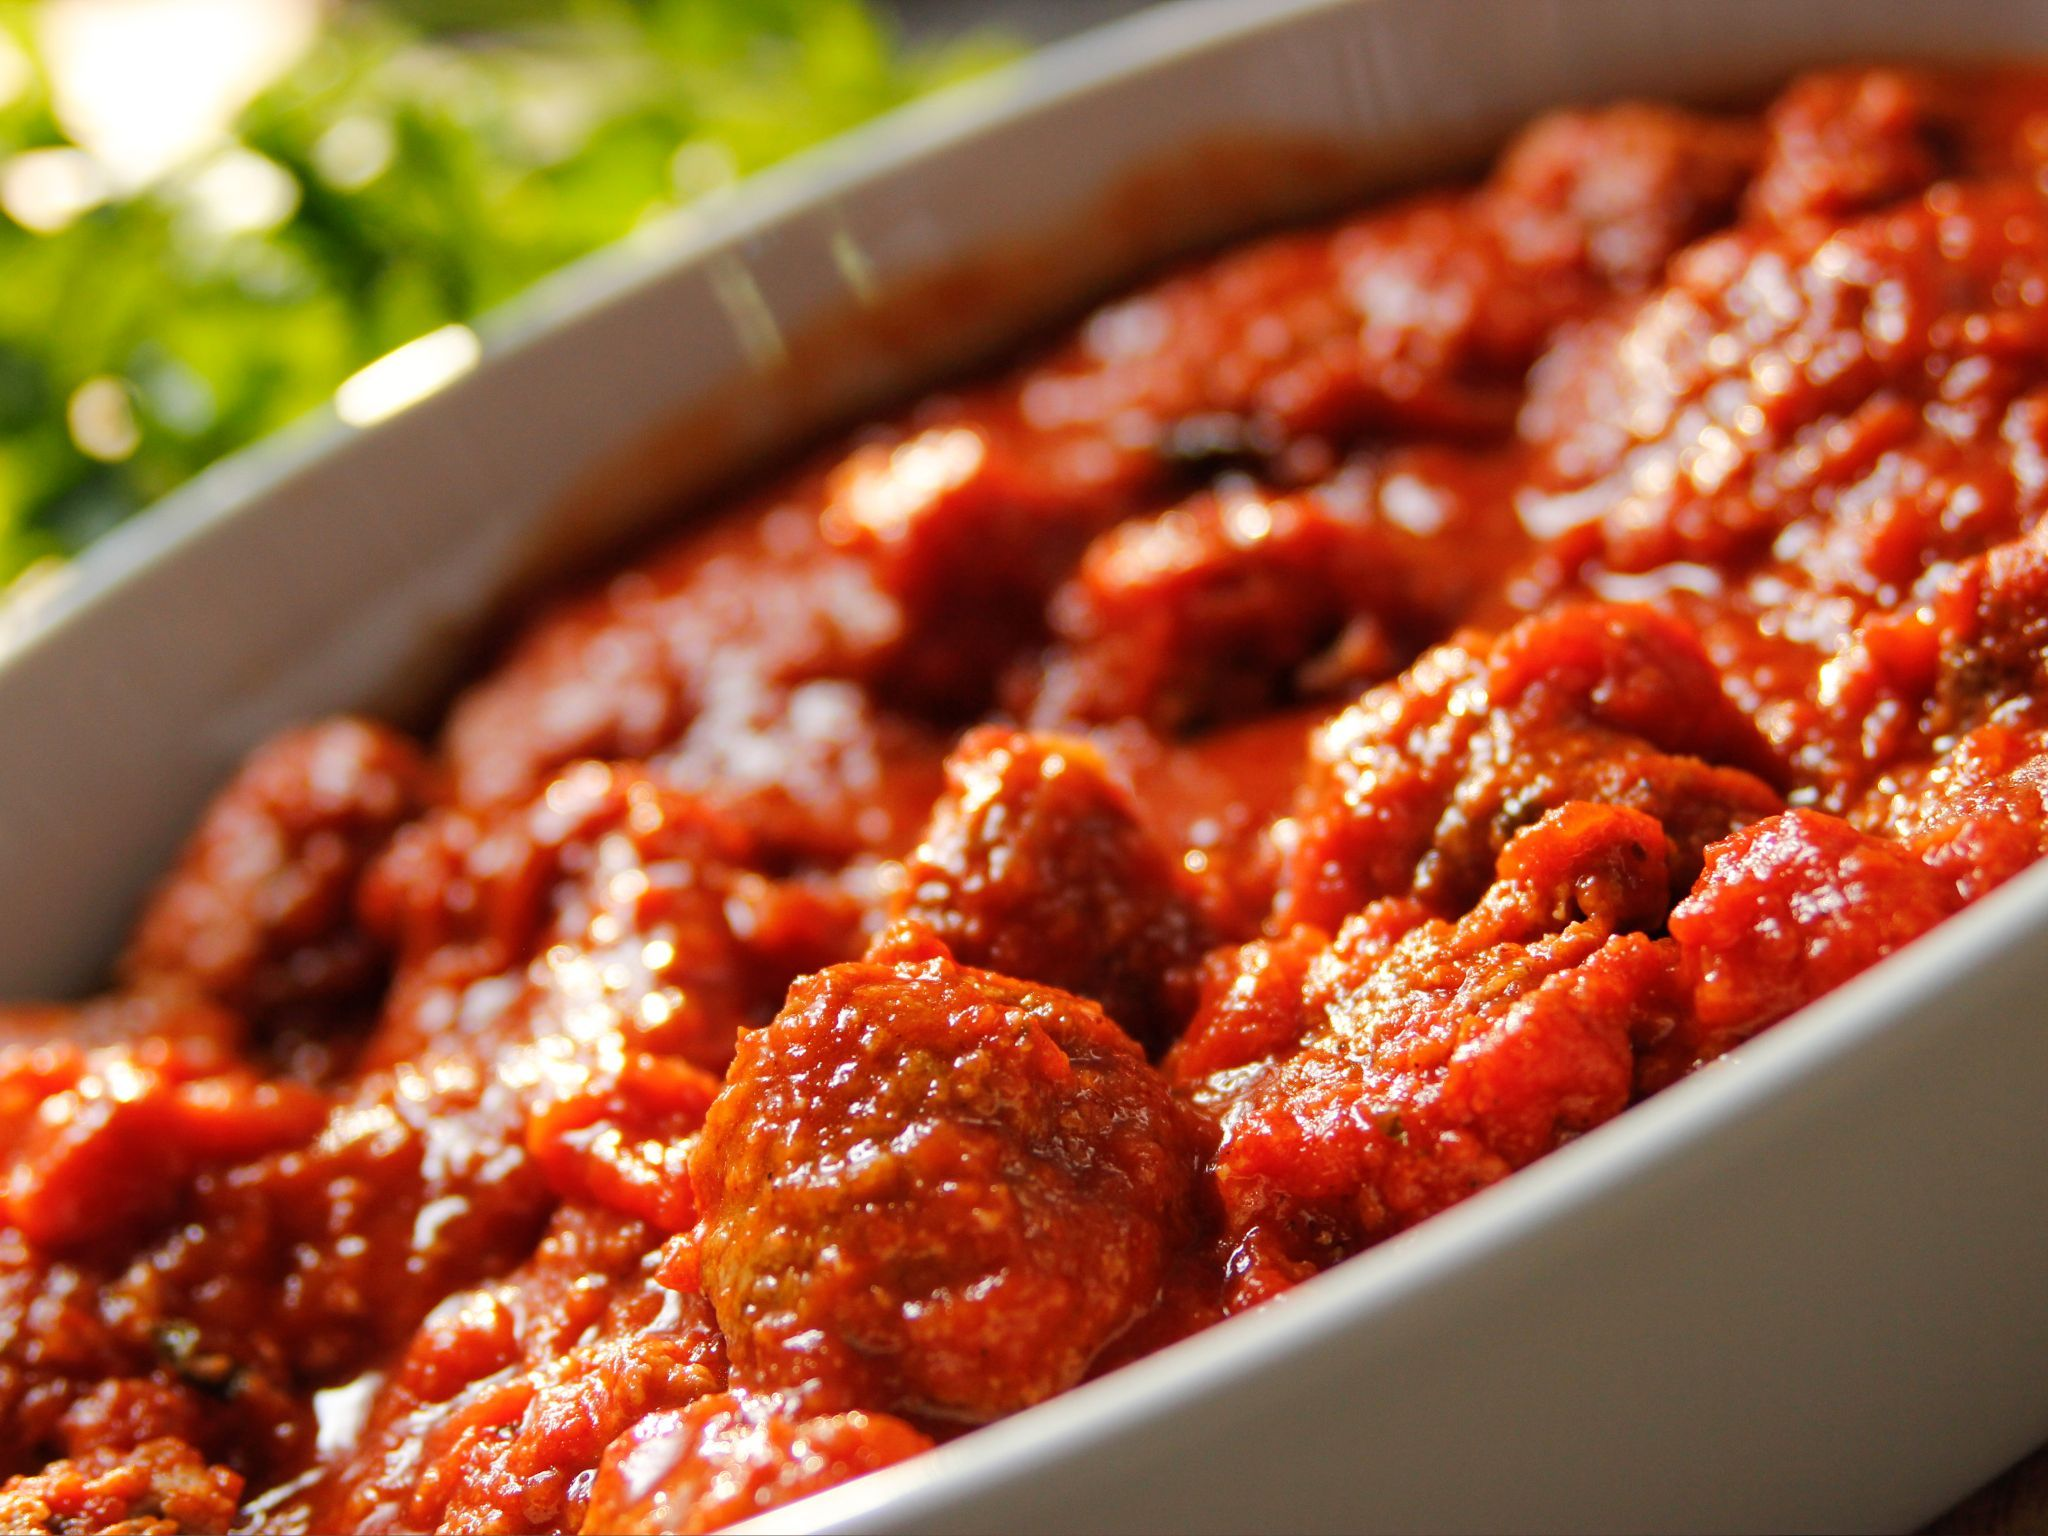 Roasted Tomatoes Ina Garten roasted italian meatballs | recipe | ina garten, garten and food